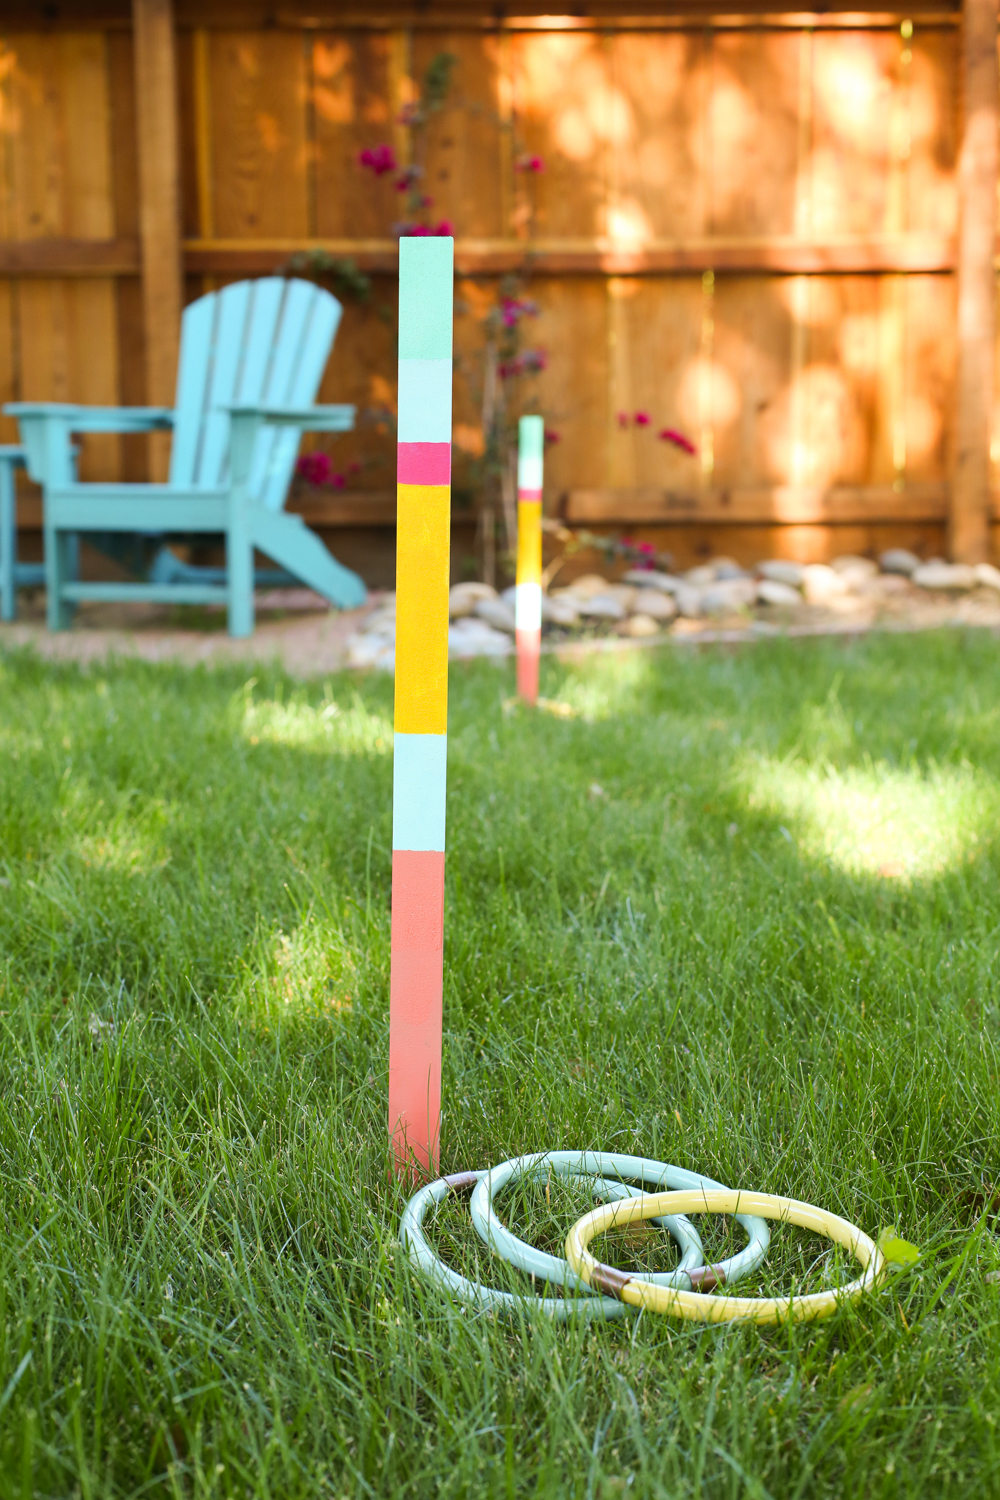 Painted ring toss yard game on lawn